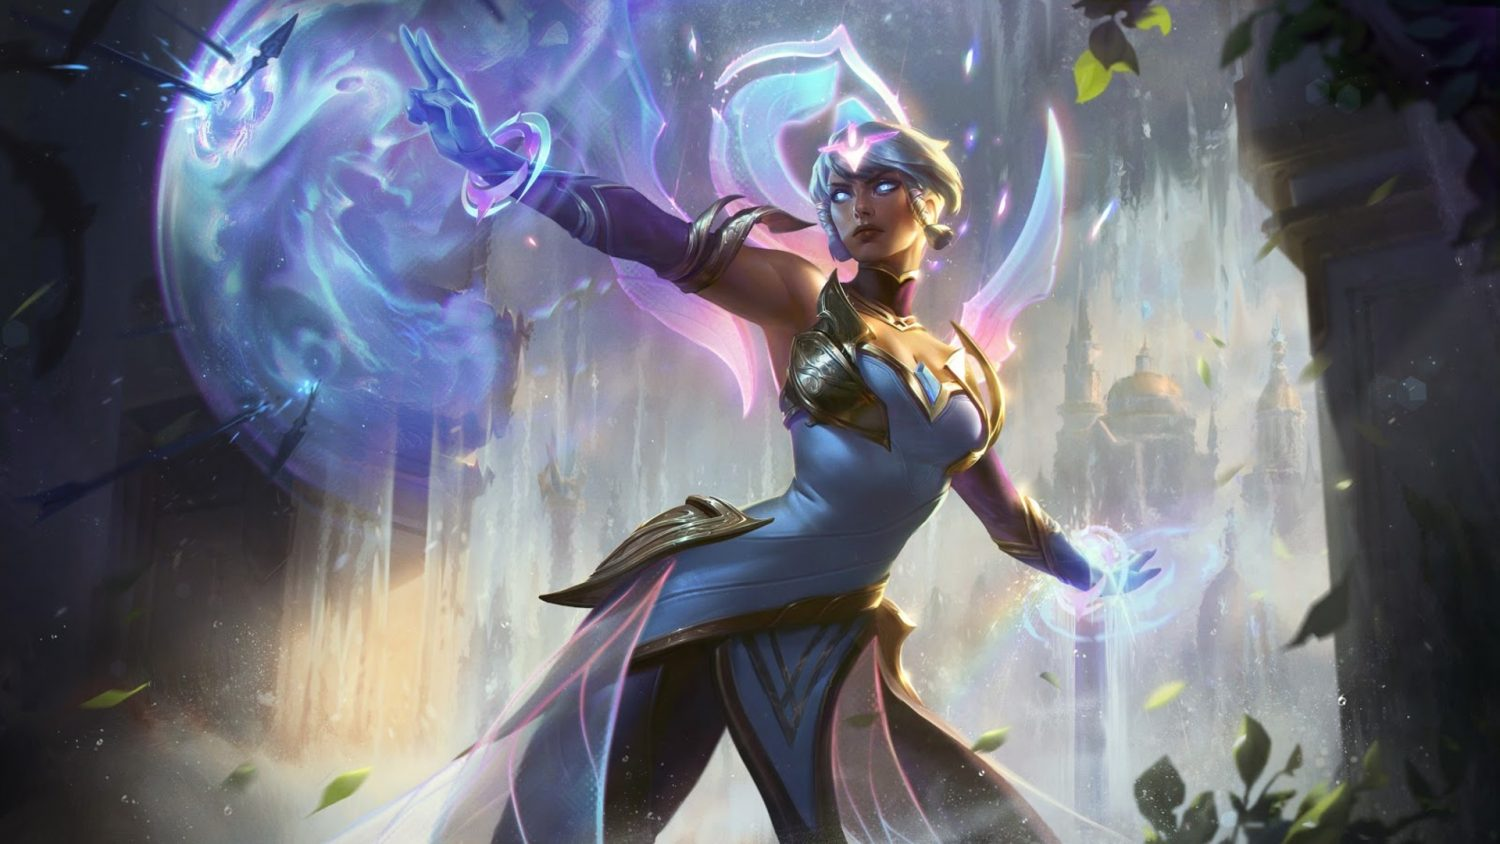 League of Legends has more than 1,000 skins, so it's hard to choose the best one. In this article, we've picked out 18 best League of Legends skins. We really hope that you'll like the skins we chose!